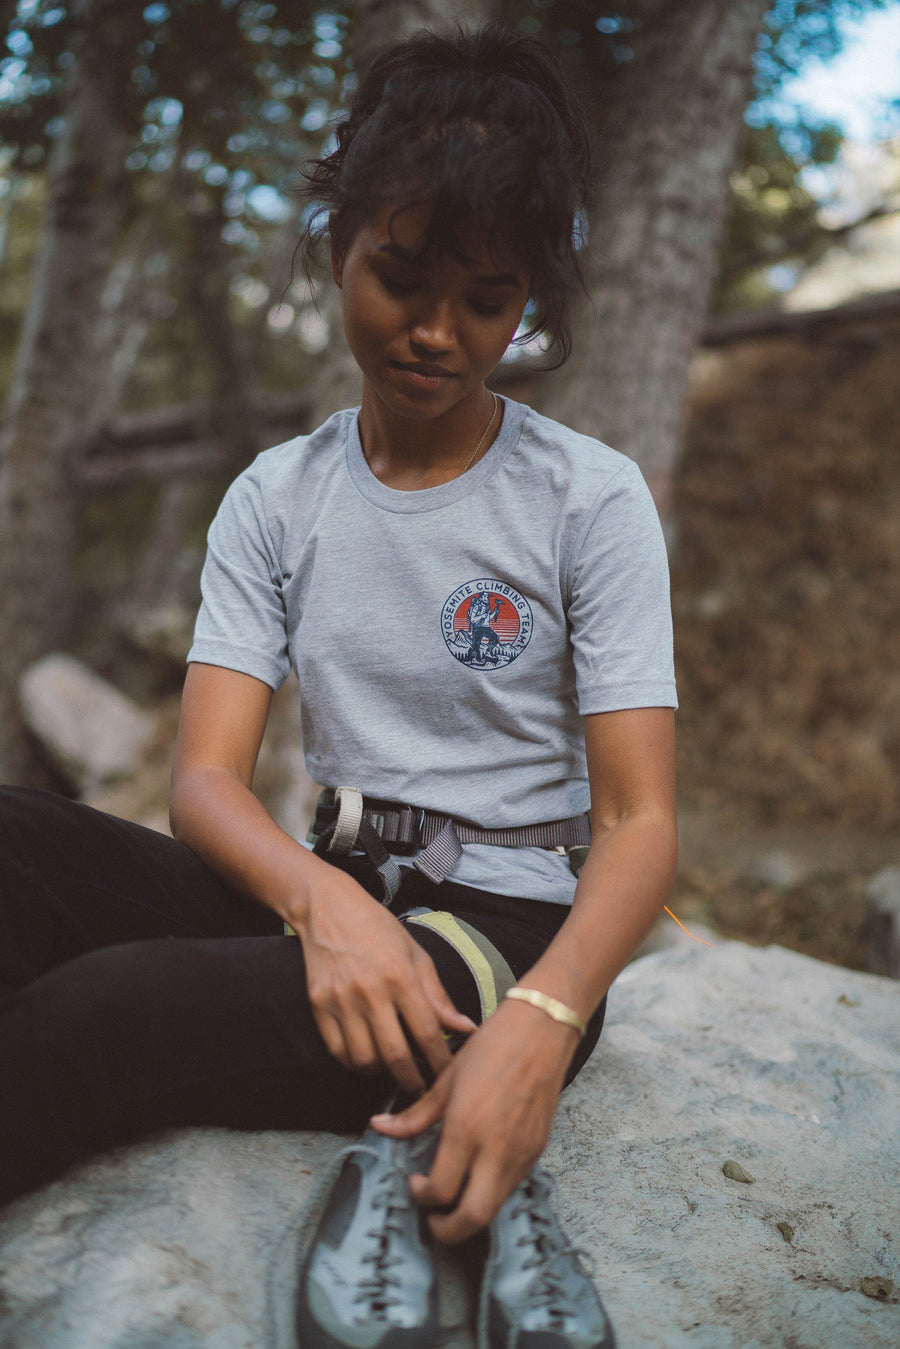 Yosemite Climbing Team Tee - Wondery, A Parks Apparel Brand